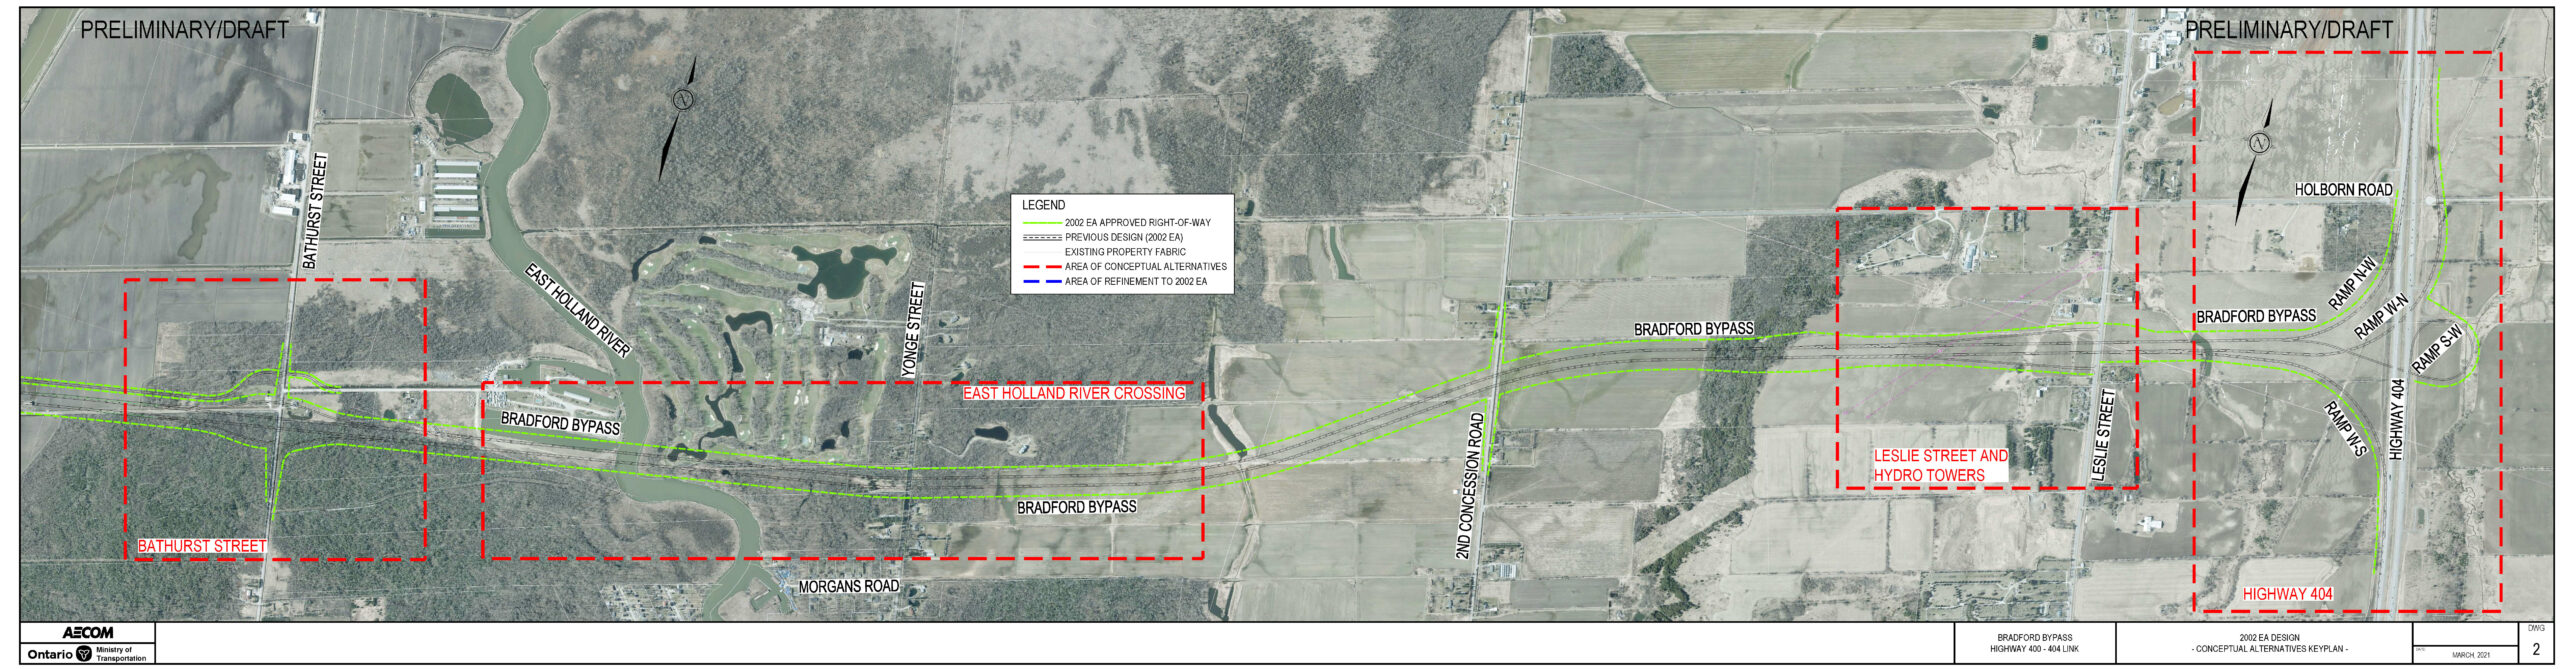 2002 Approved EA Alignment for the Bradford Bypass which serves as the Preliminary Design Base Case